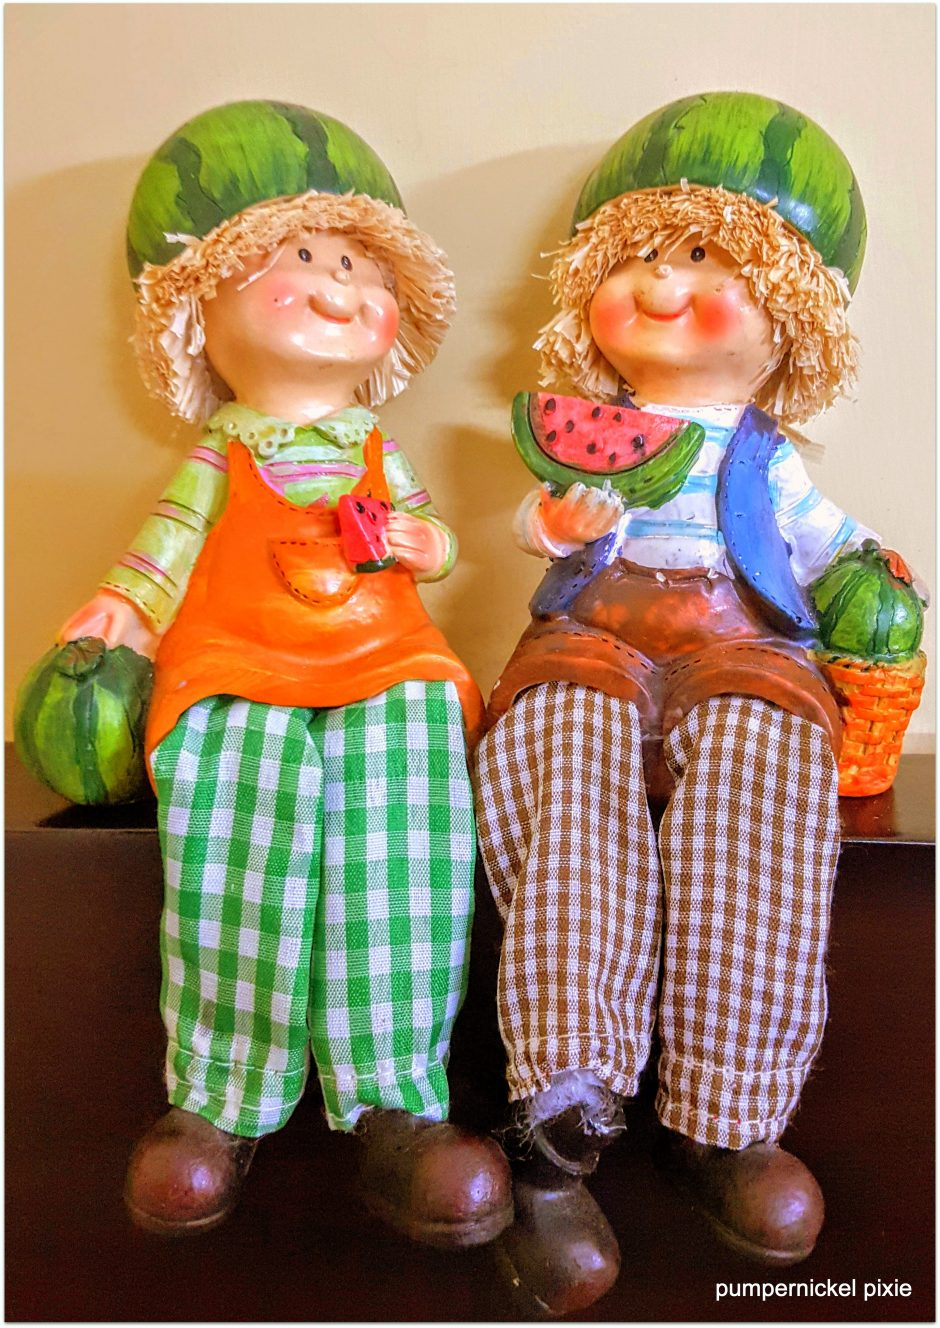 watermelon, figurines, dolls, farm, people, summer, cute, fresh, fruits, showpiece, a photo a week, photography, pumpernickel pixie